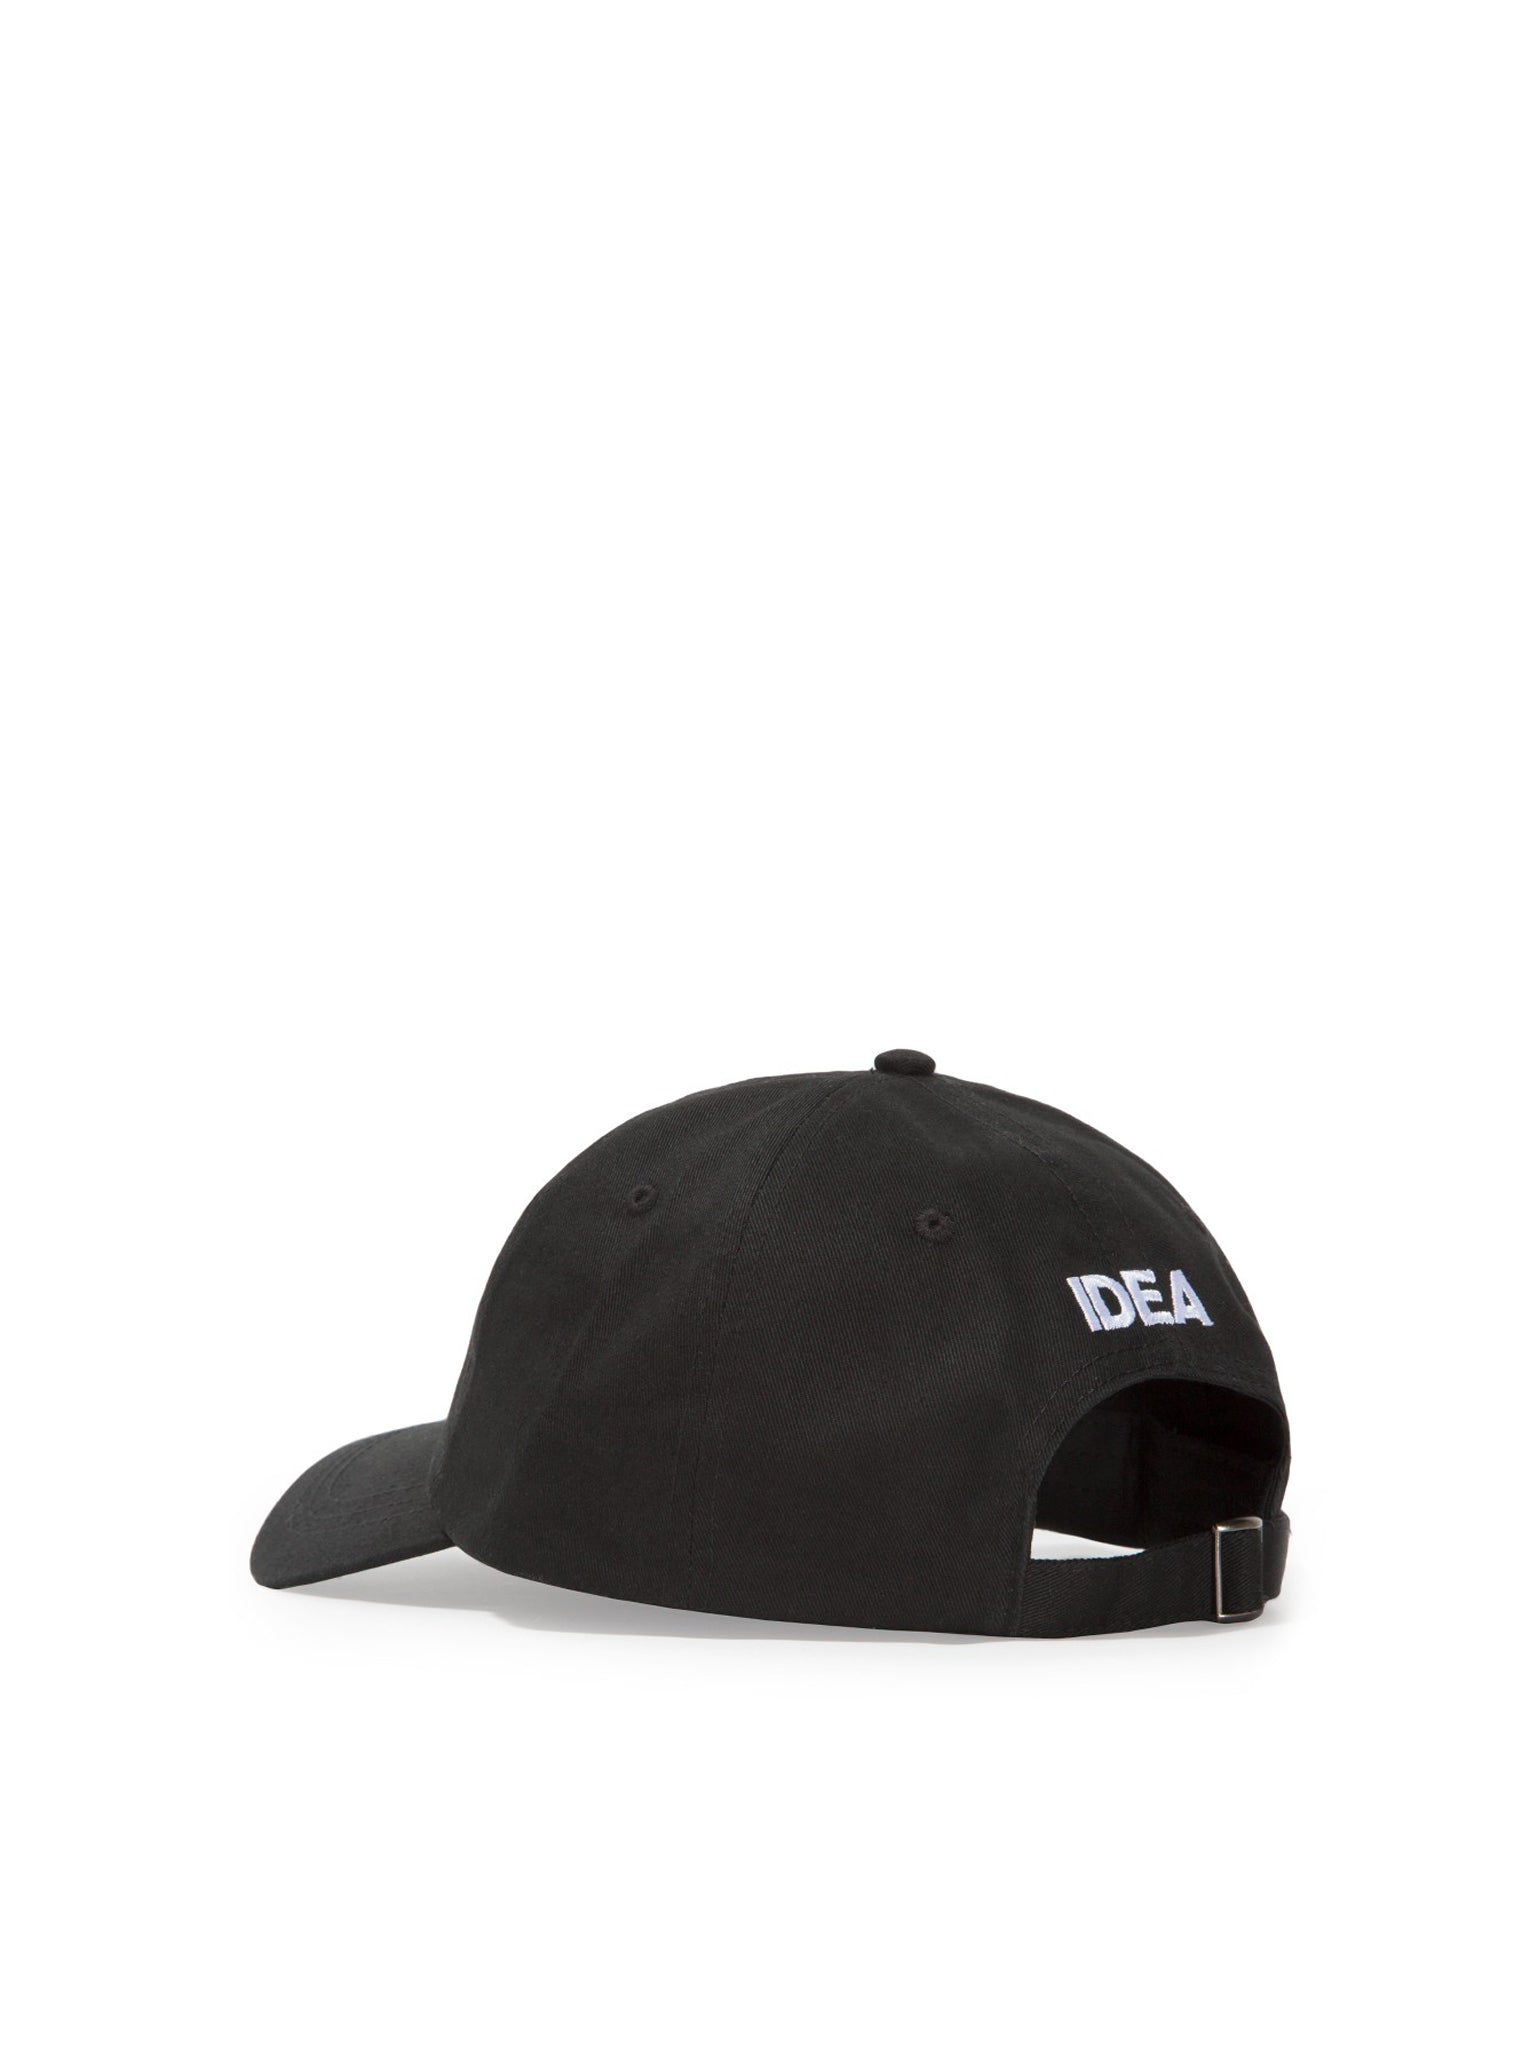 Stussy Idea 6 Paney Chanel SS Reverse Hat